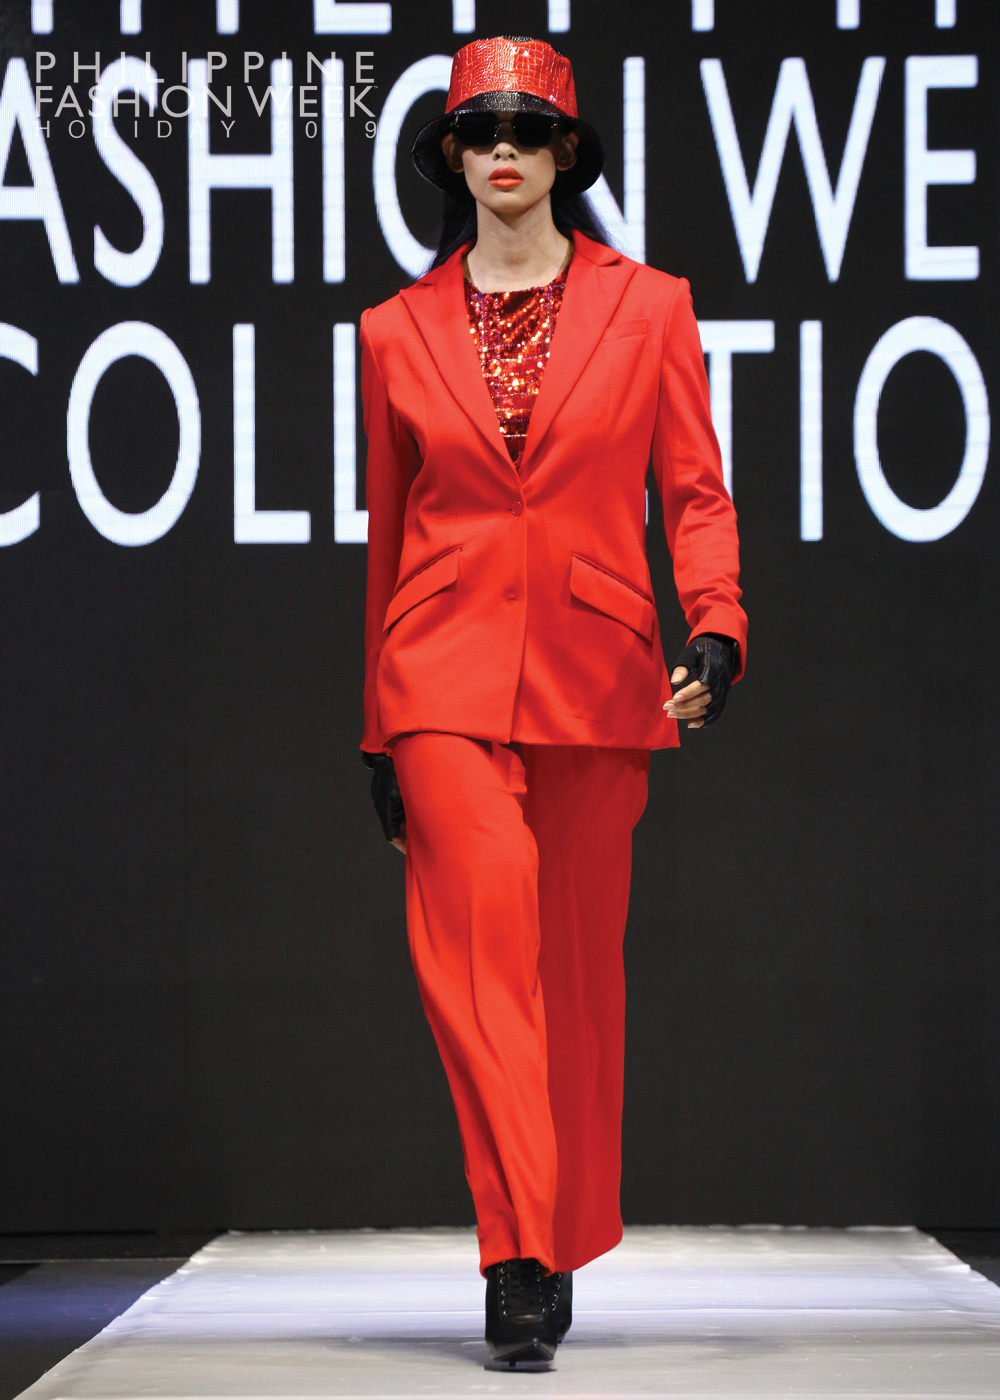 PhFW_collection show13.jpg